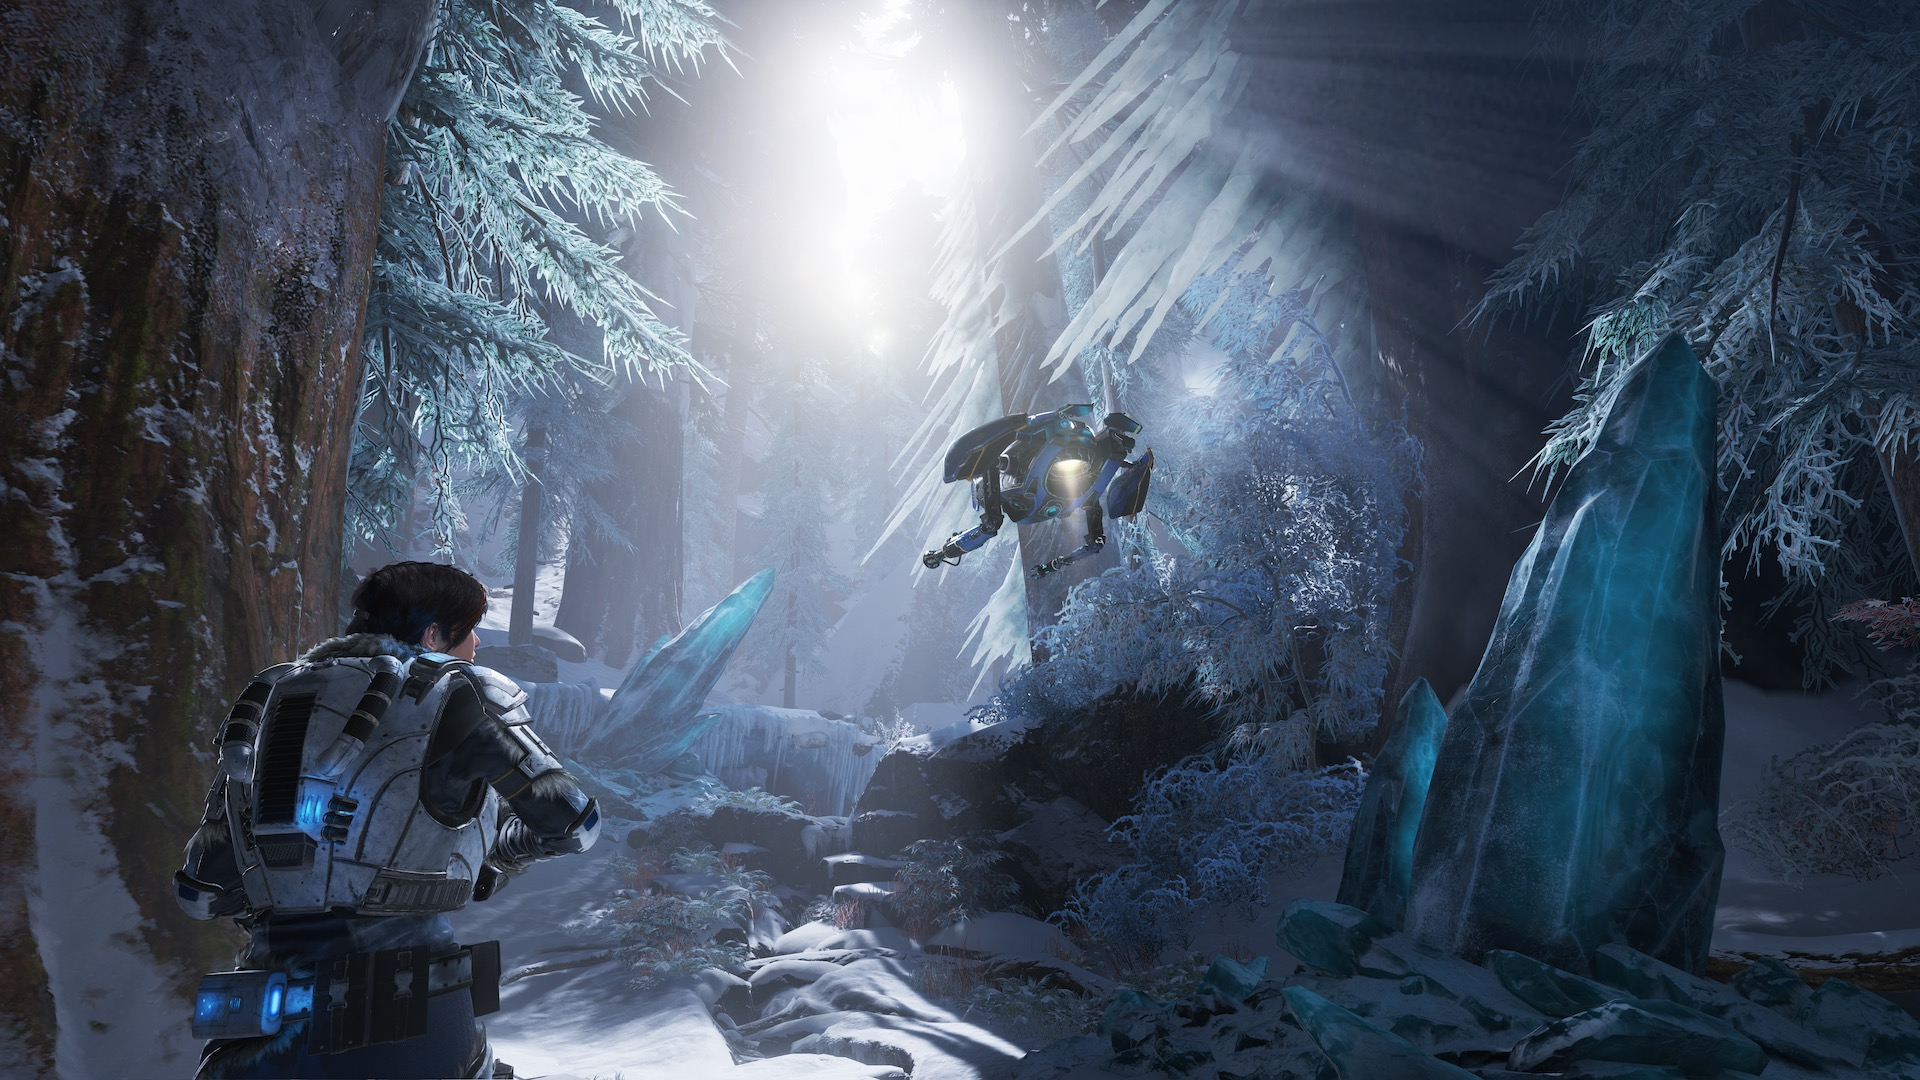 The remarkably true story of how many people it took to make ice break in Gears 5 when it's shot with a gun